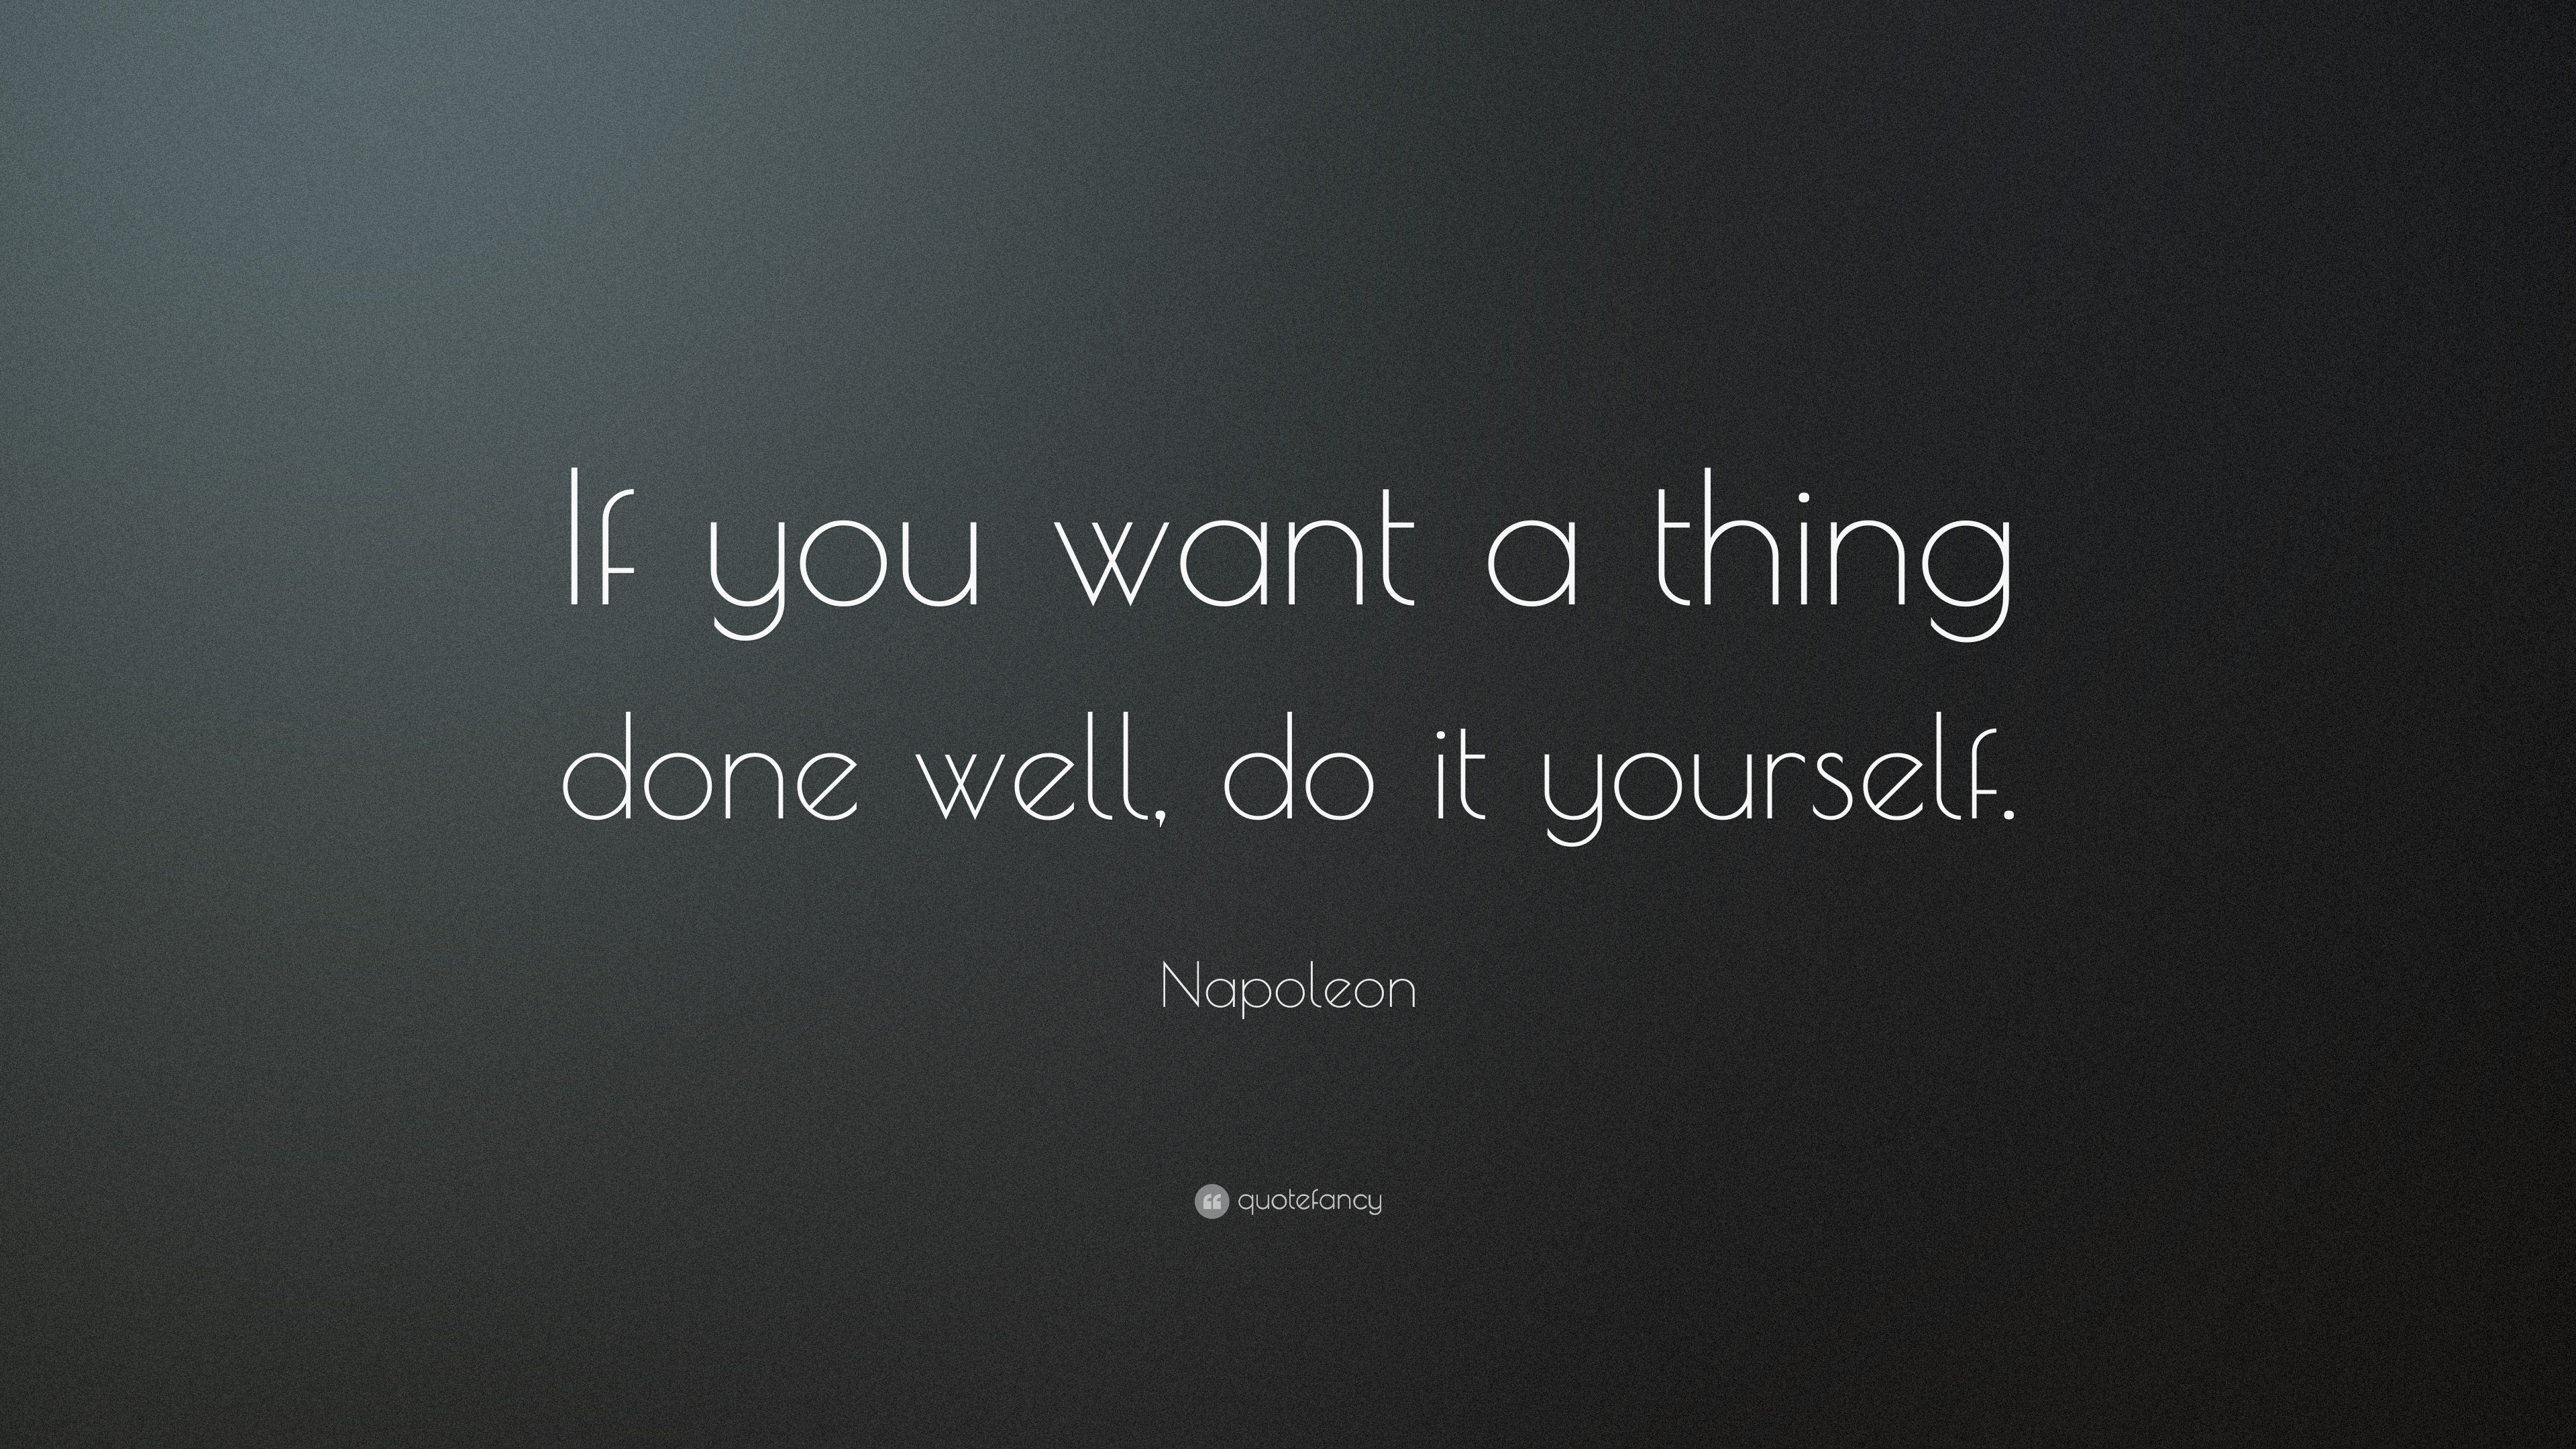 Napoleon quote if you want a thing done well do it yourself 15 napoleon quote if you want a thing done well do it yourself solutioingenieria Gallery